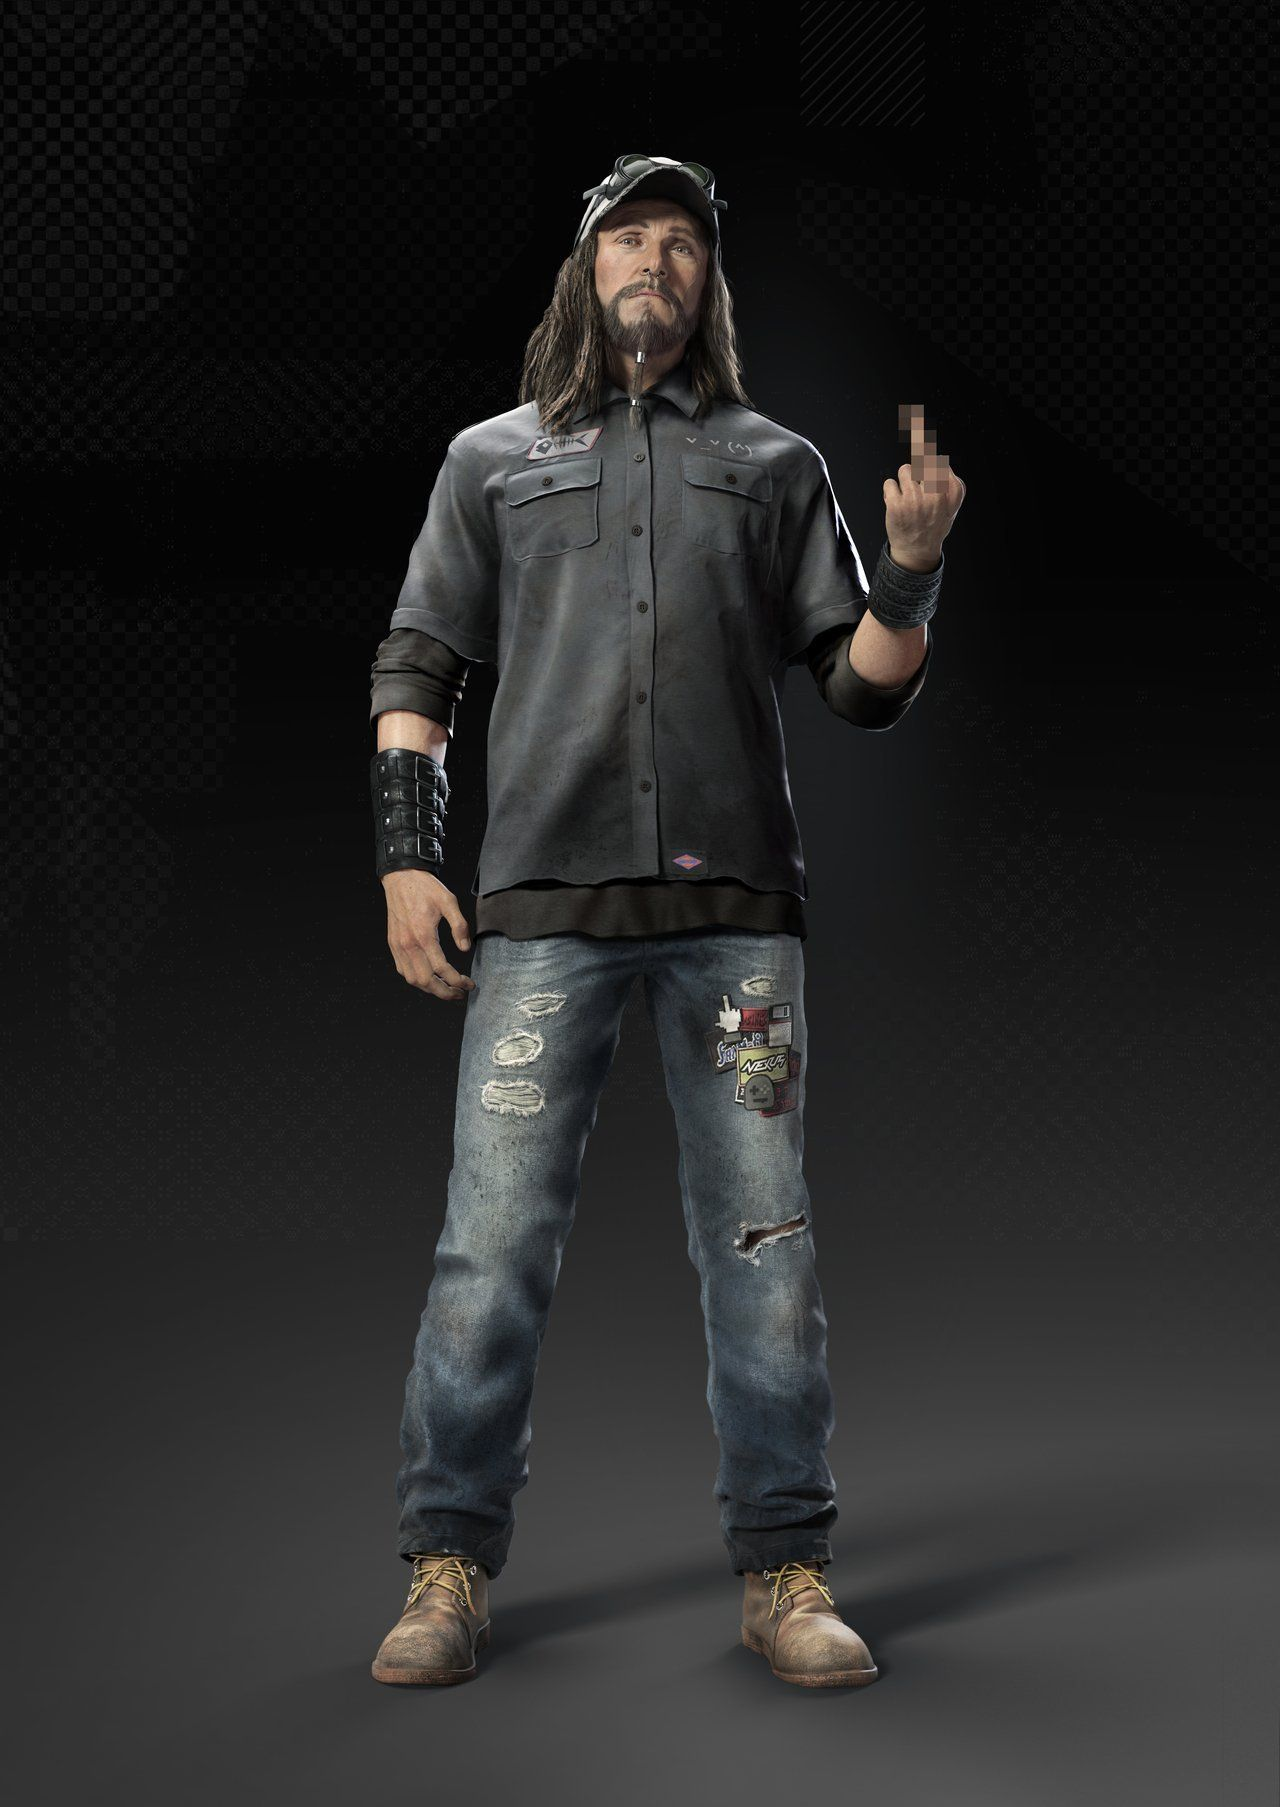 Pin On Watch Dogs 2